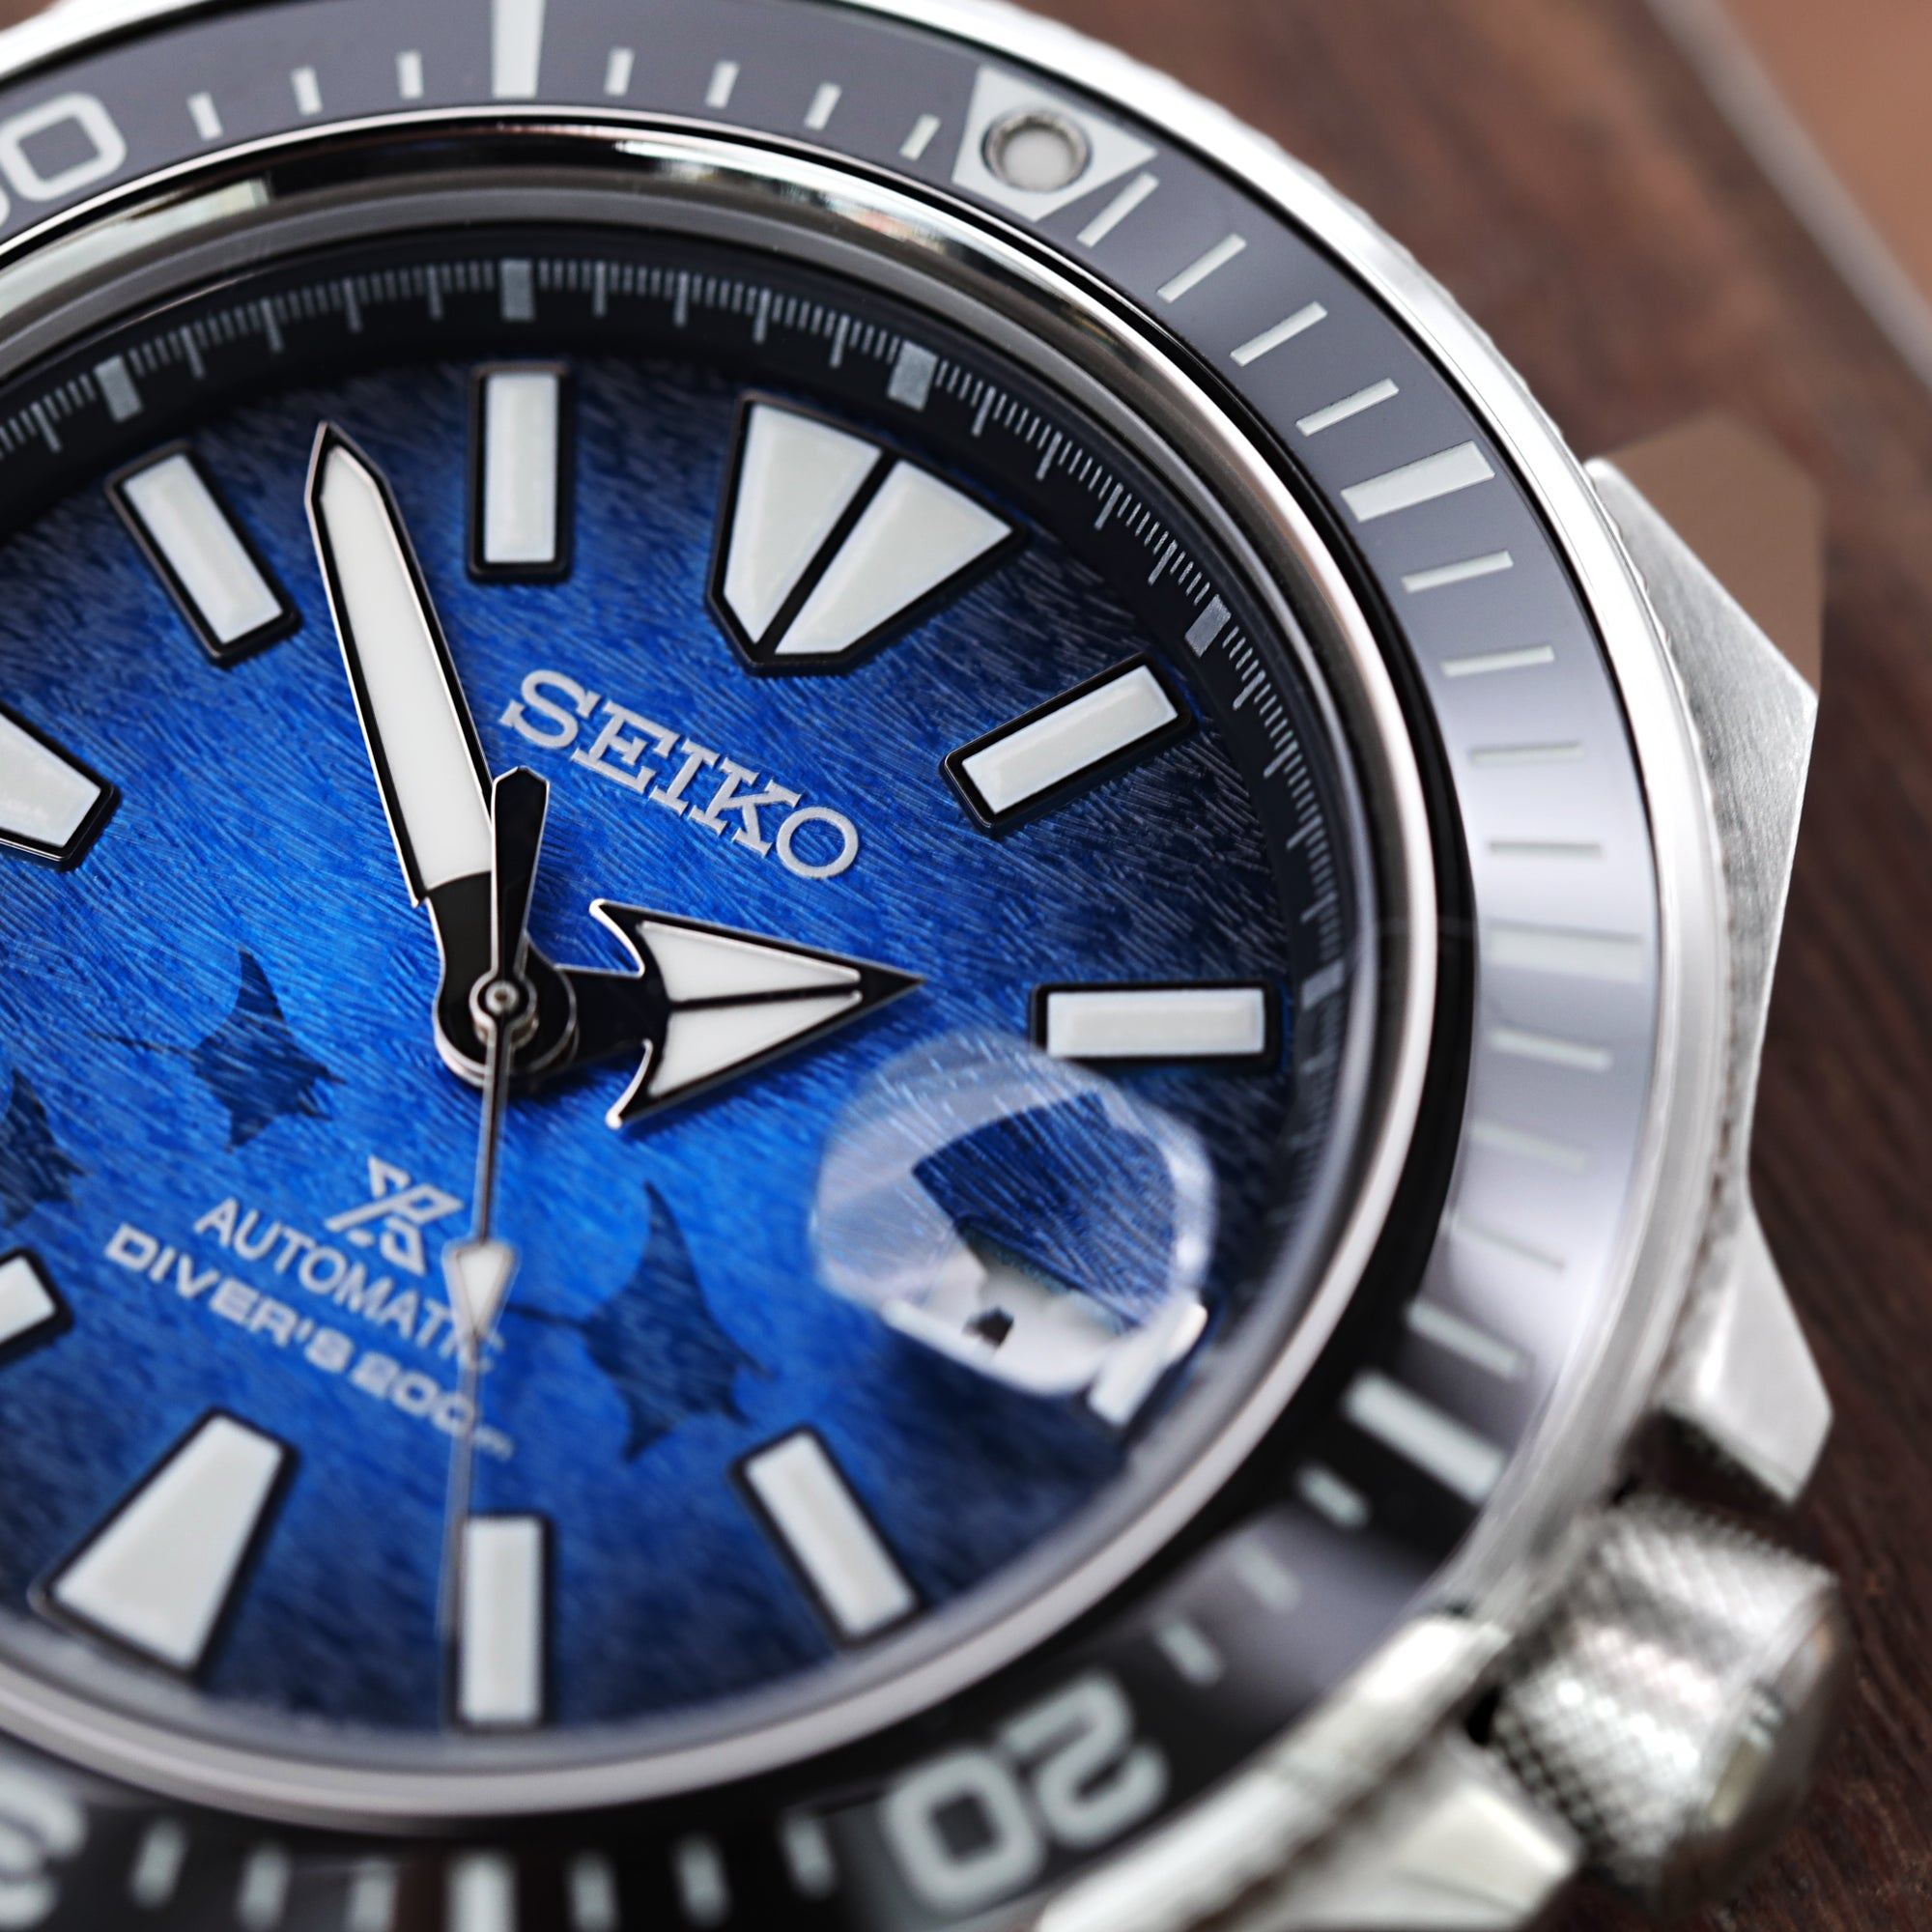 Seiko Prospex King Samurai - Save The Ocean SRPE33K1